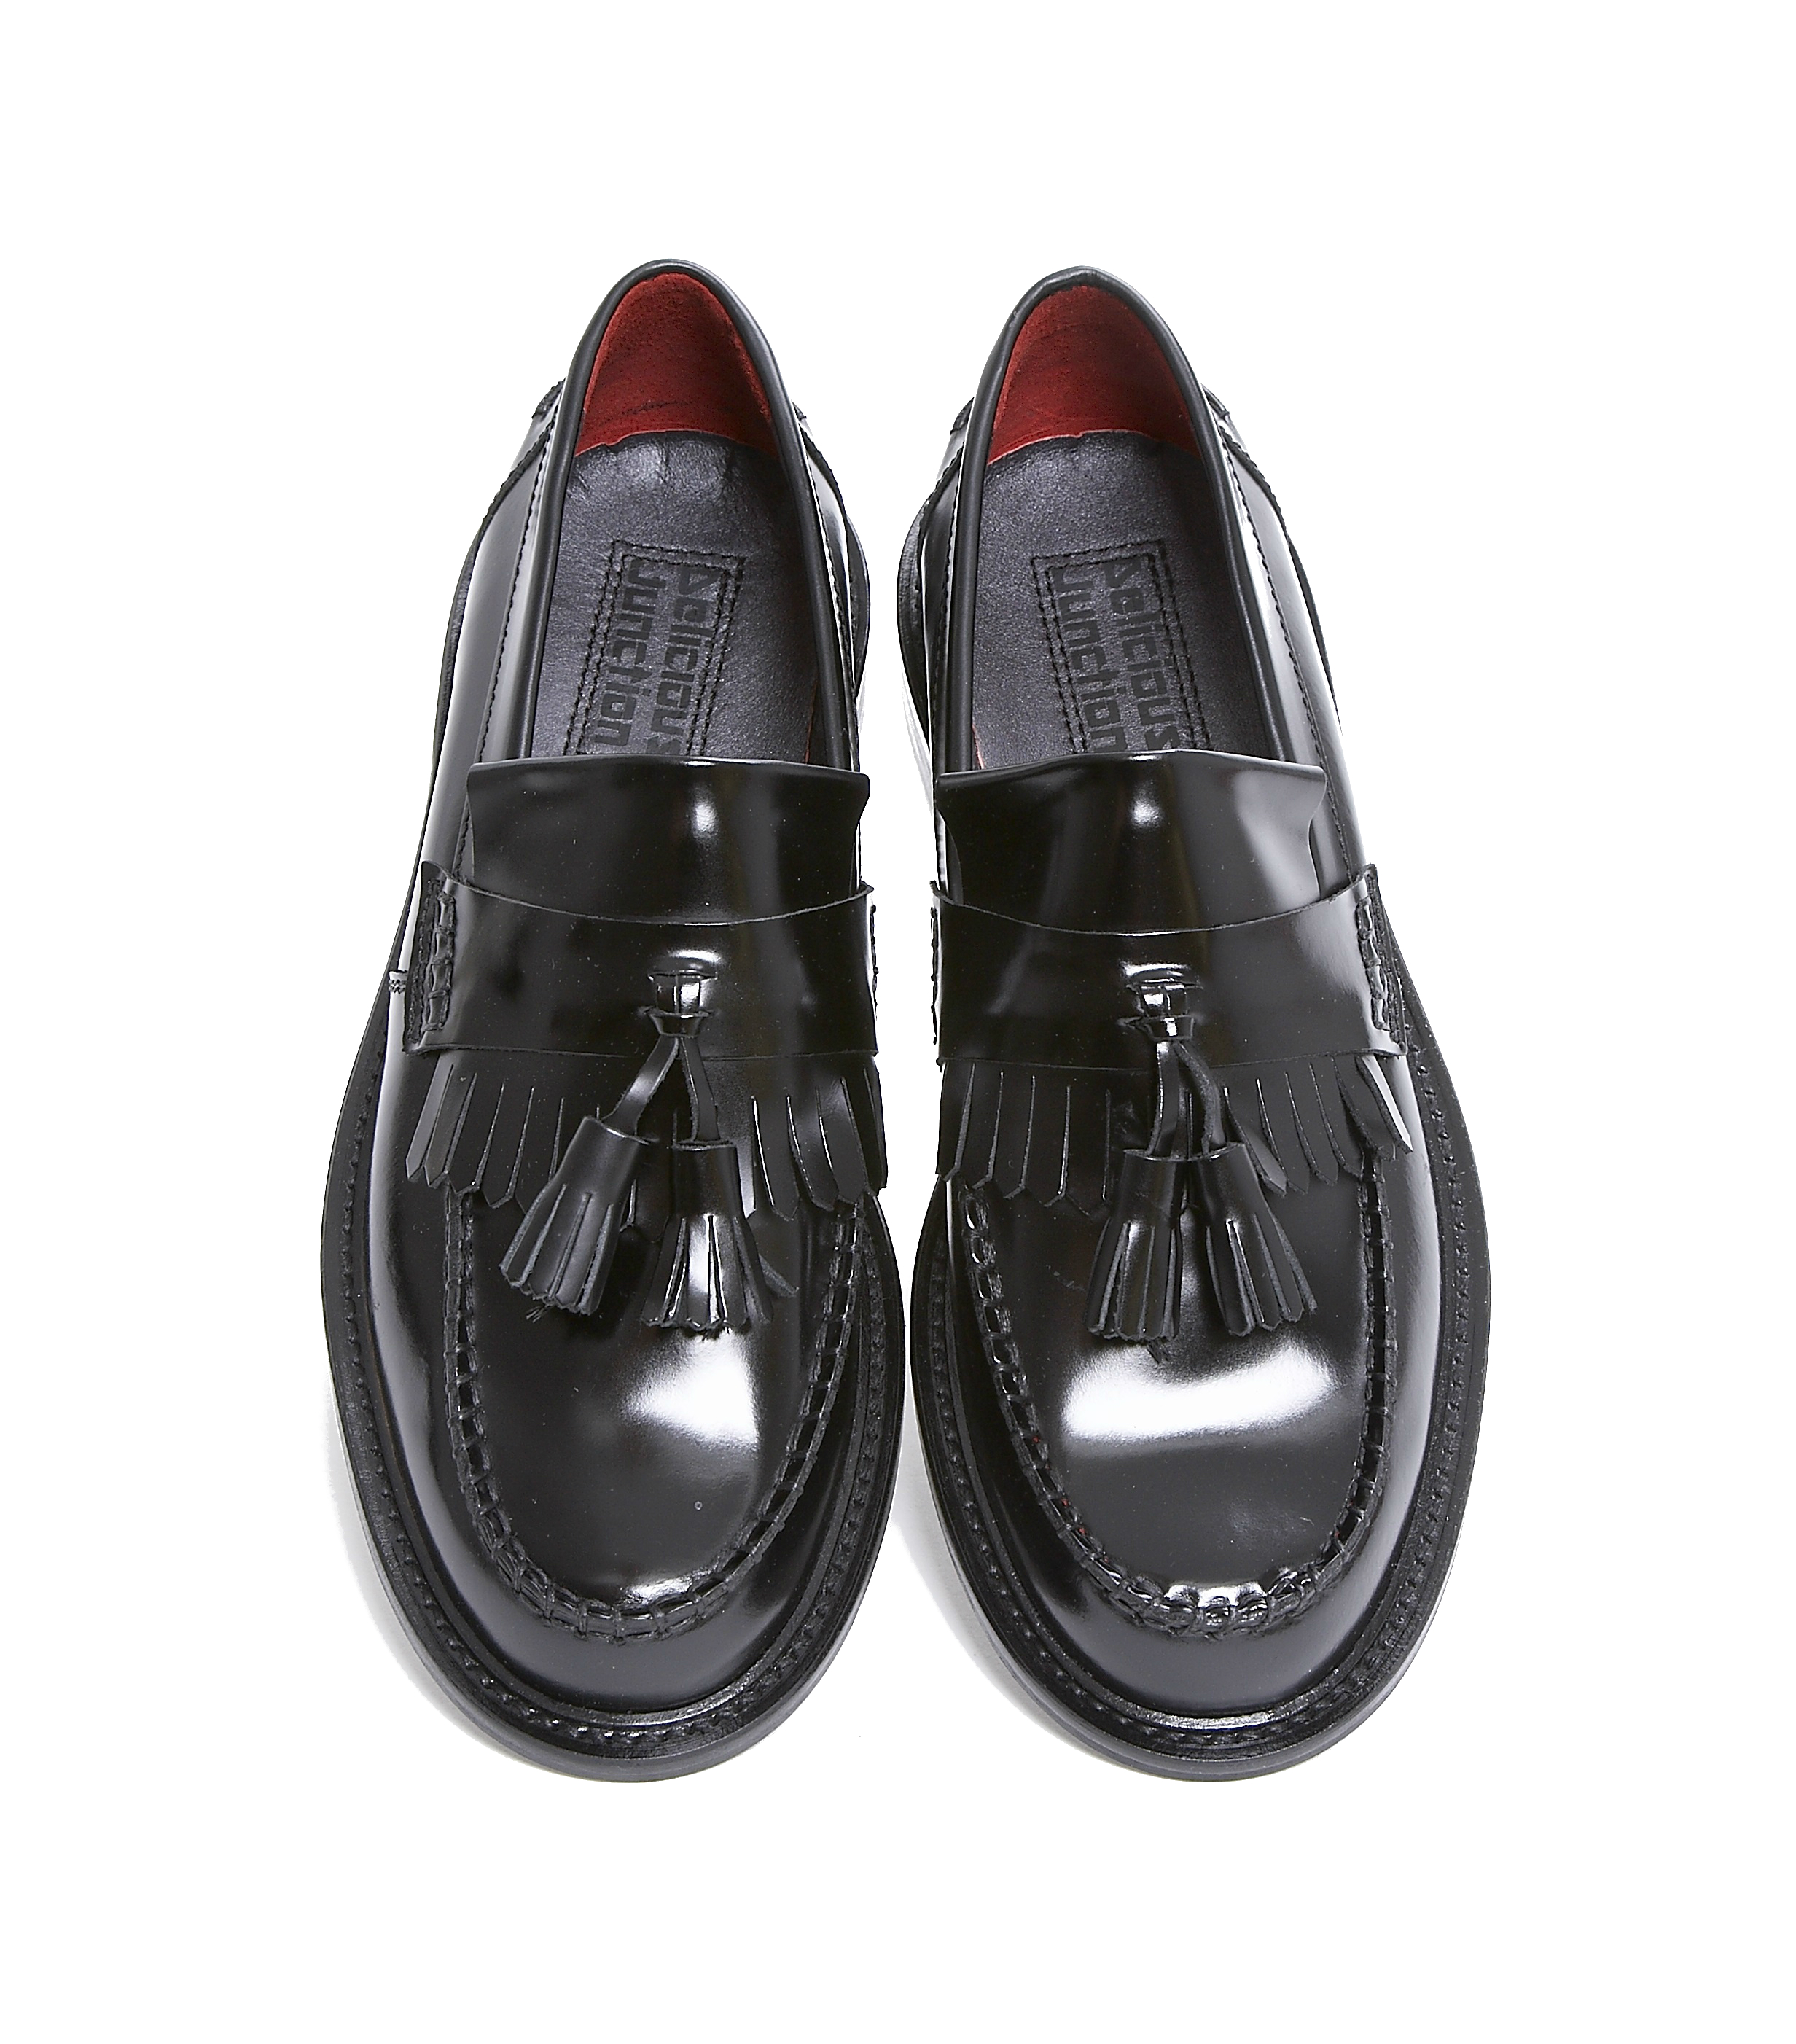 be09ee545a6f Rude Boy Black Tassel Loafer